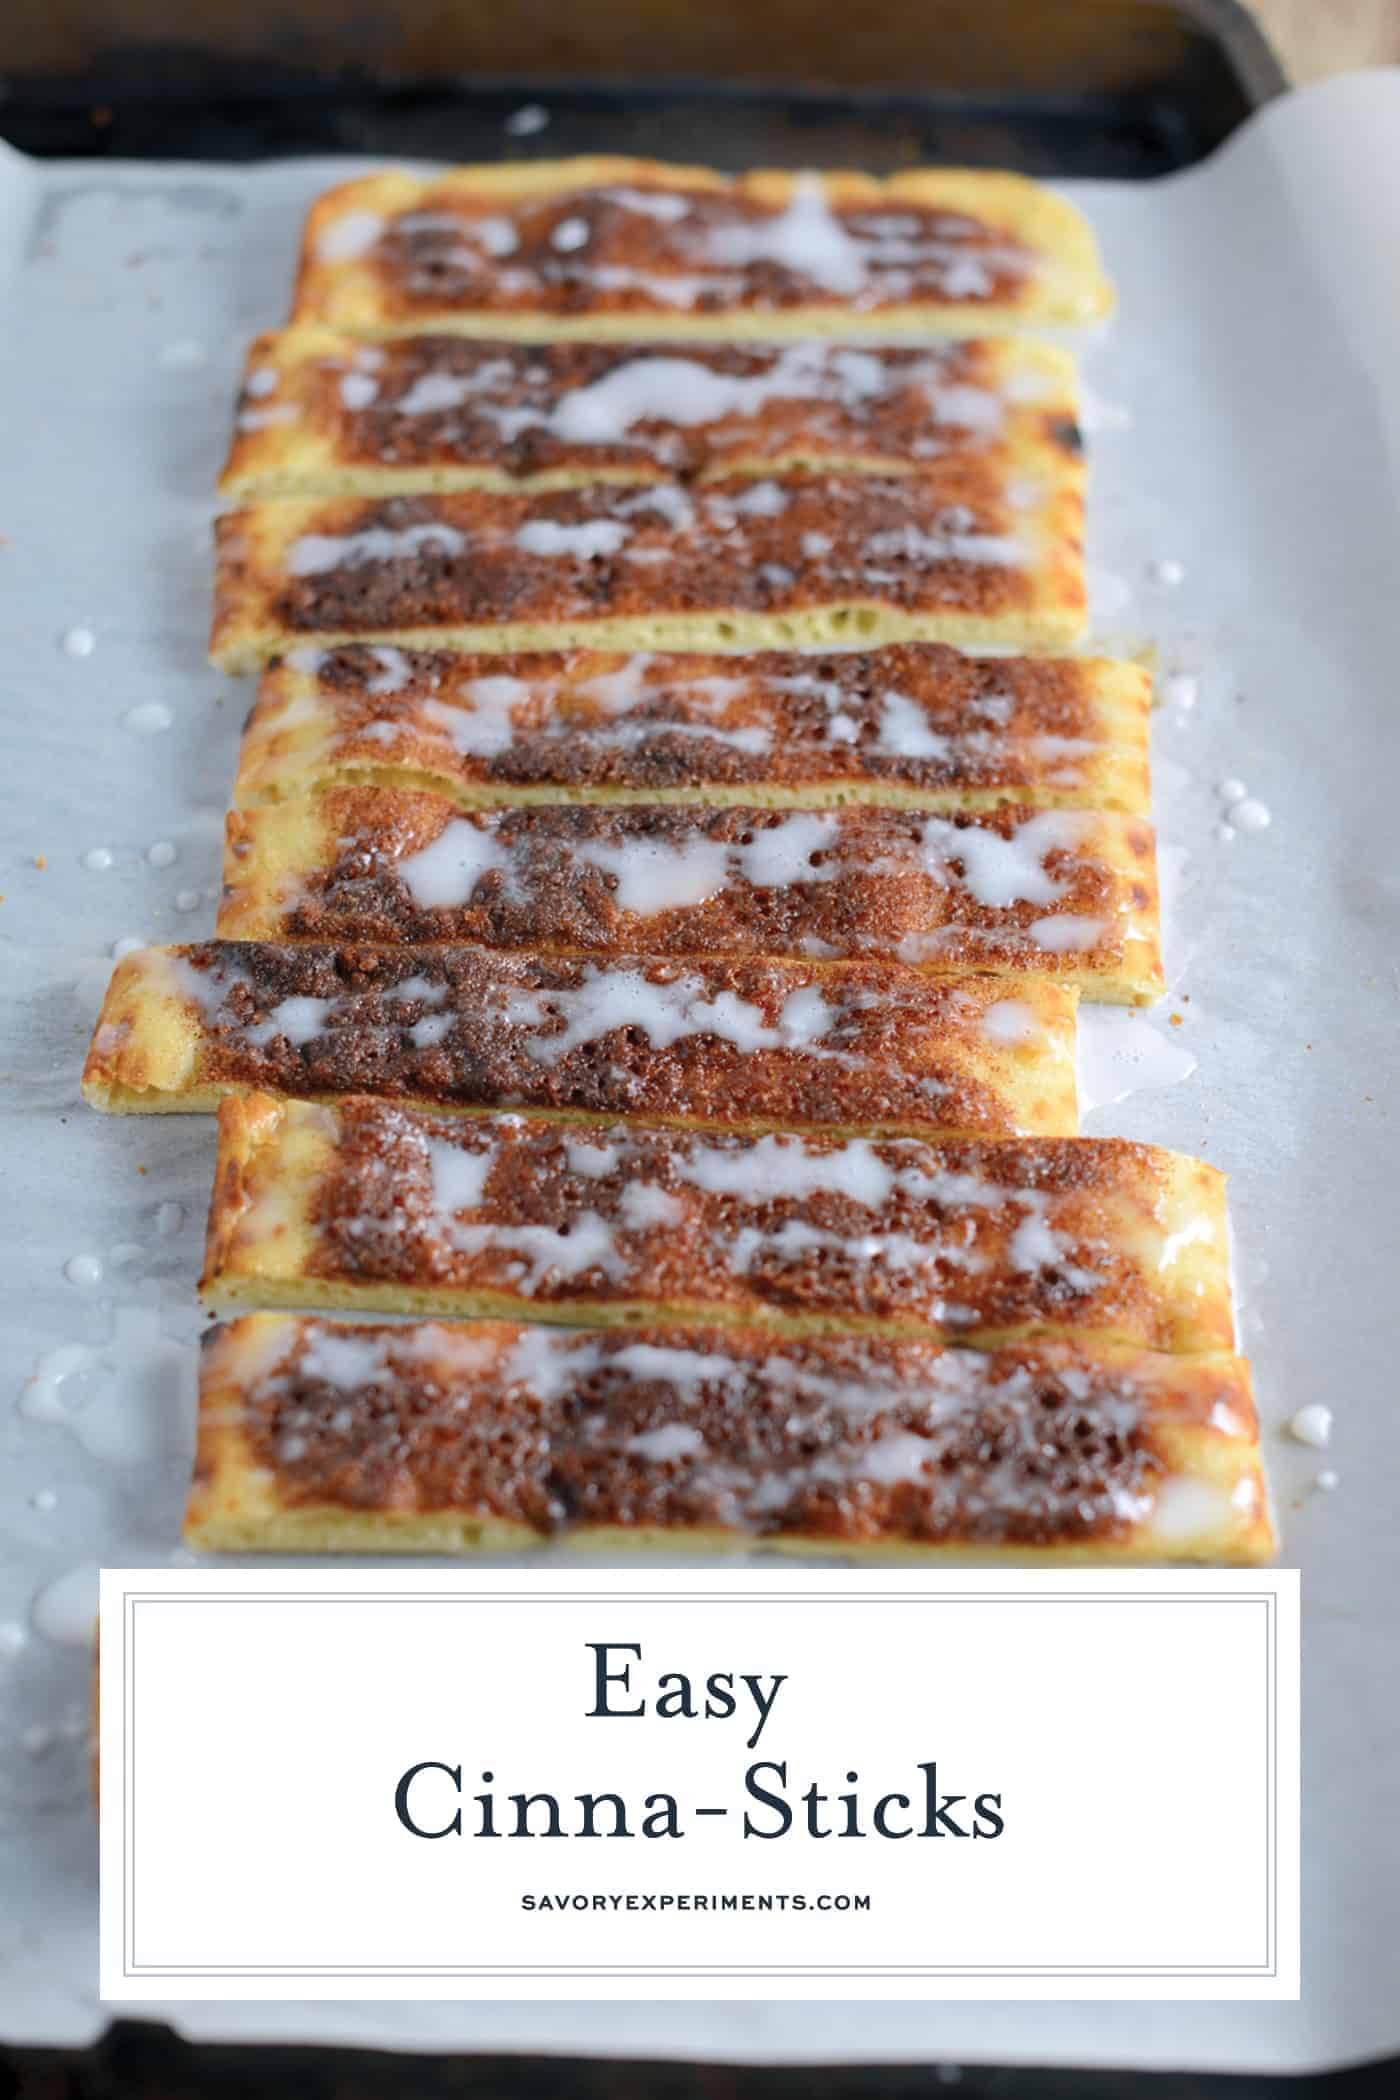 Cinna-Sticks are super easy dessert or snack recipe using flatbreads, a simple cinnamon sugar mixture and powdered sugar glaze. Kids just love them! #cinnasticks #easydessertrecipes #dessertsforkids www.savoryexperiments.com